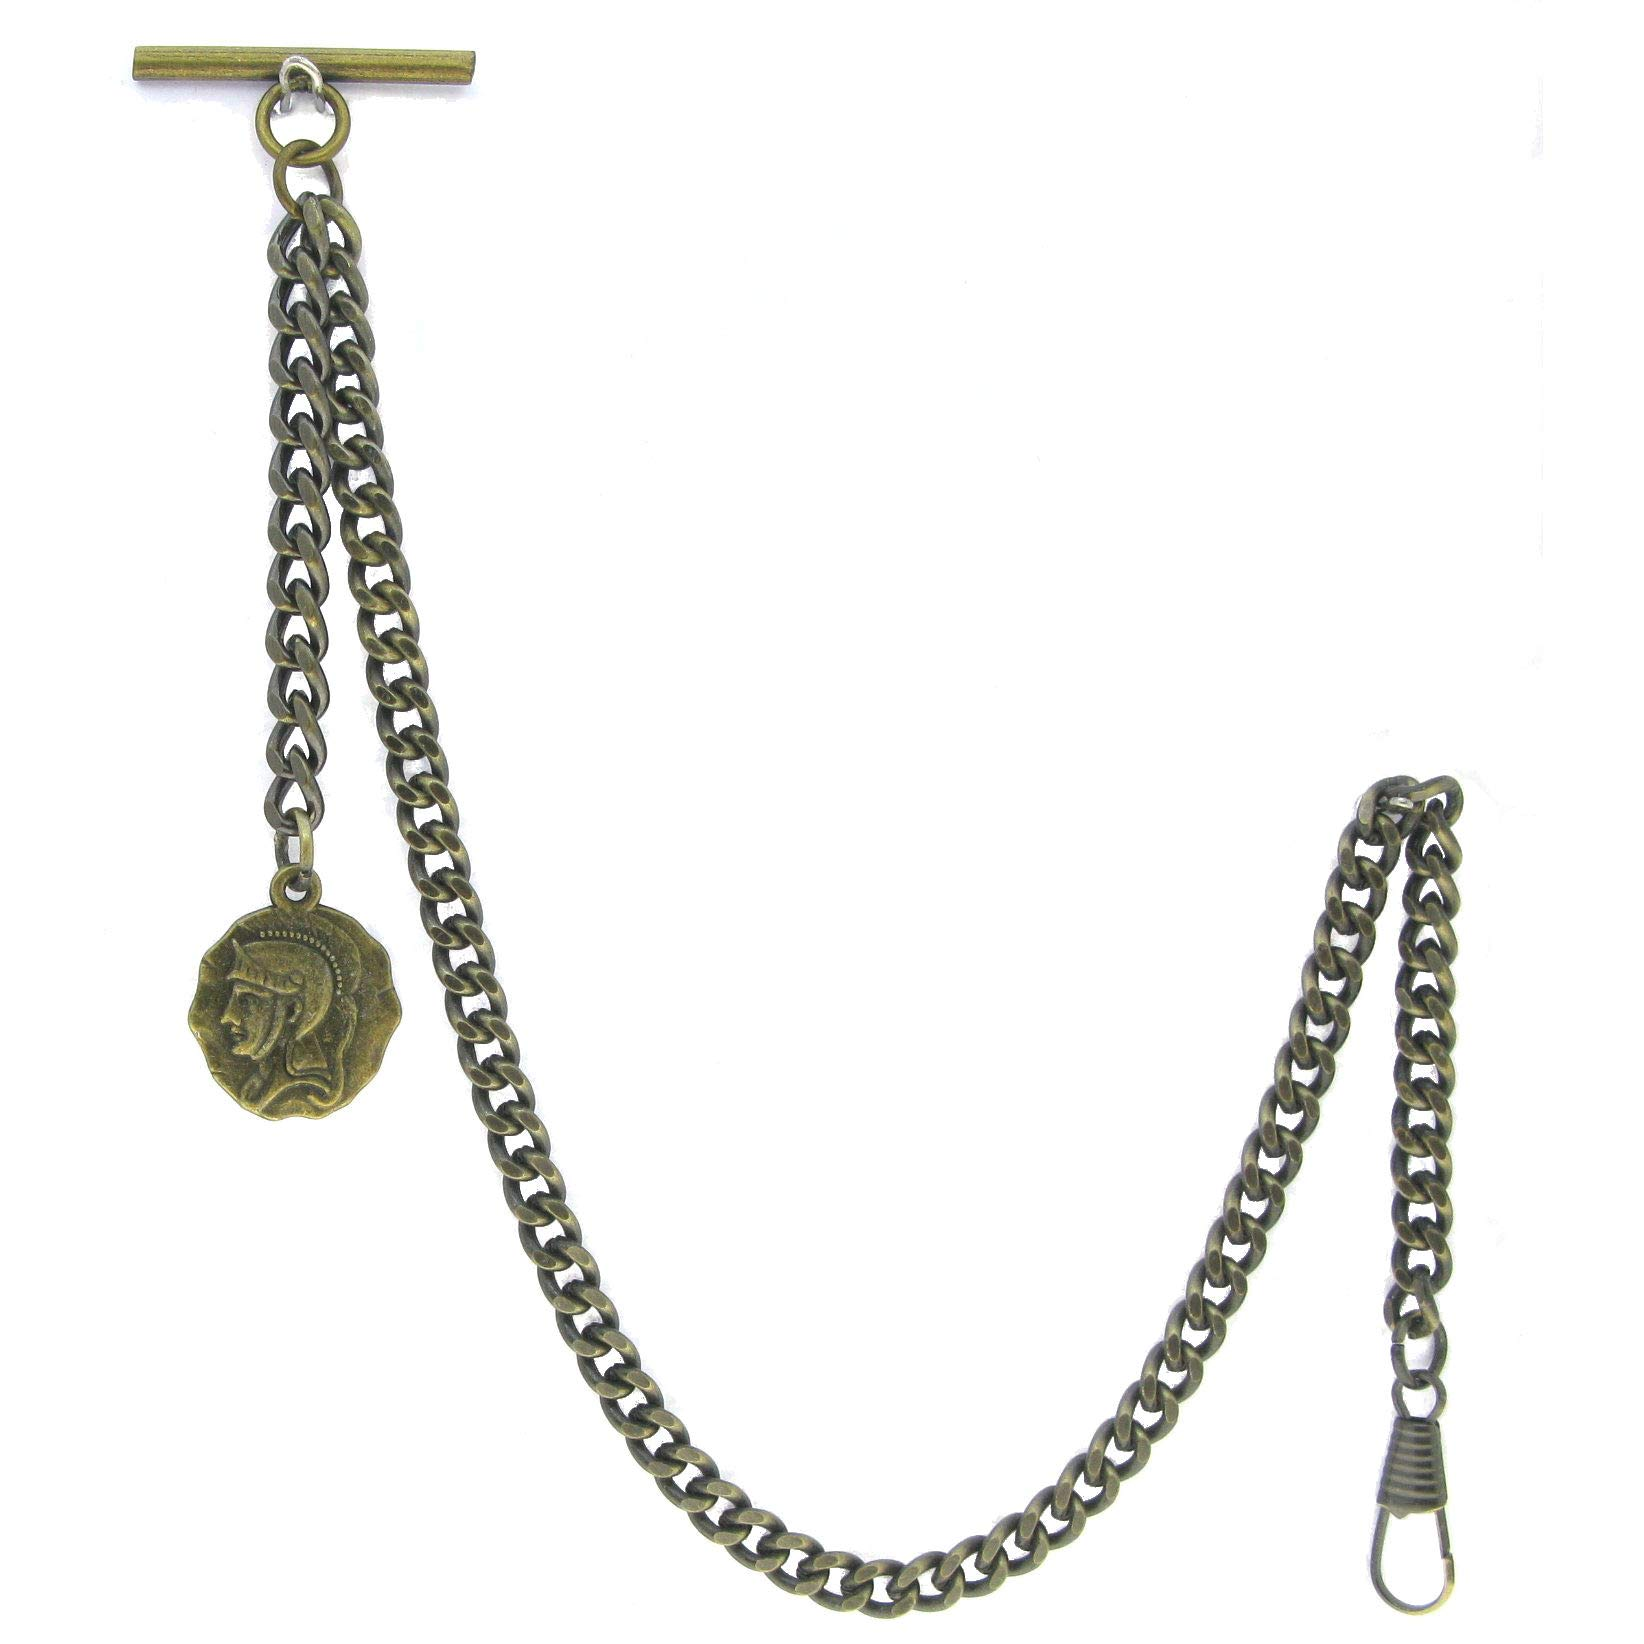 Albert Chain Pocket Watch Curb Link Chain Antique Brass Color Ancient Warrier Medal Fob T Bar AC92